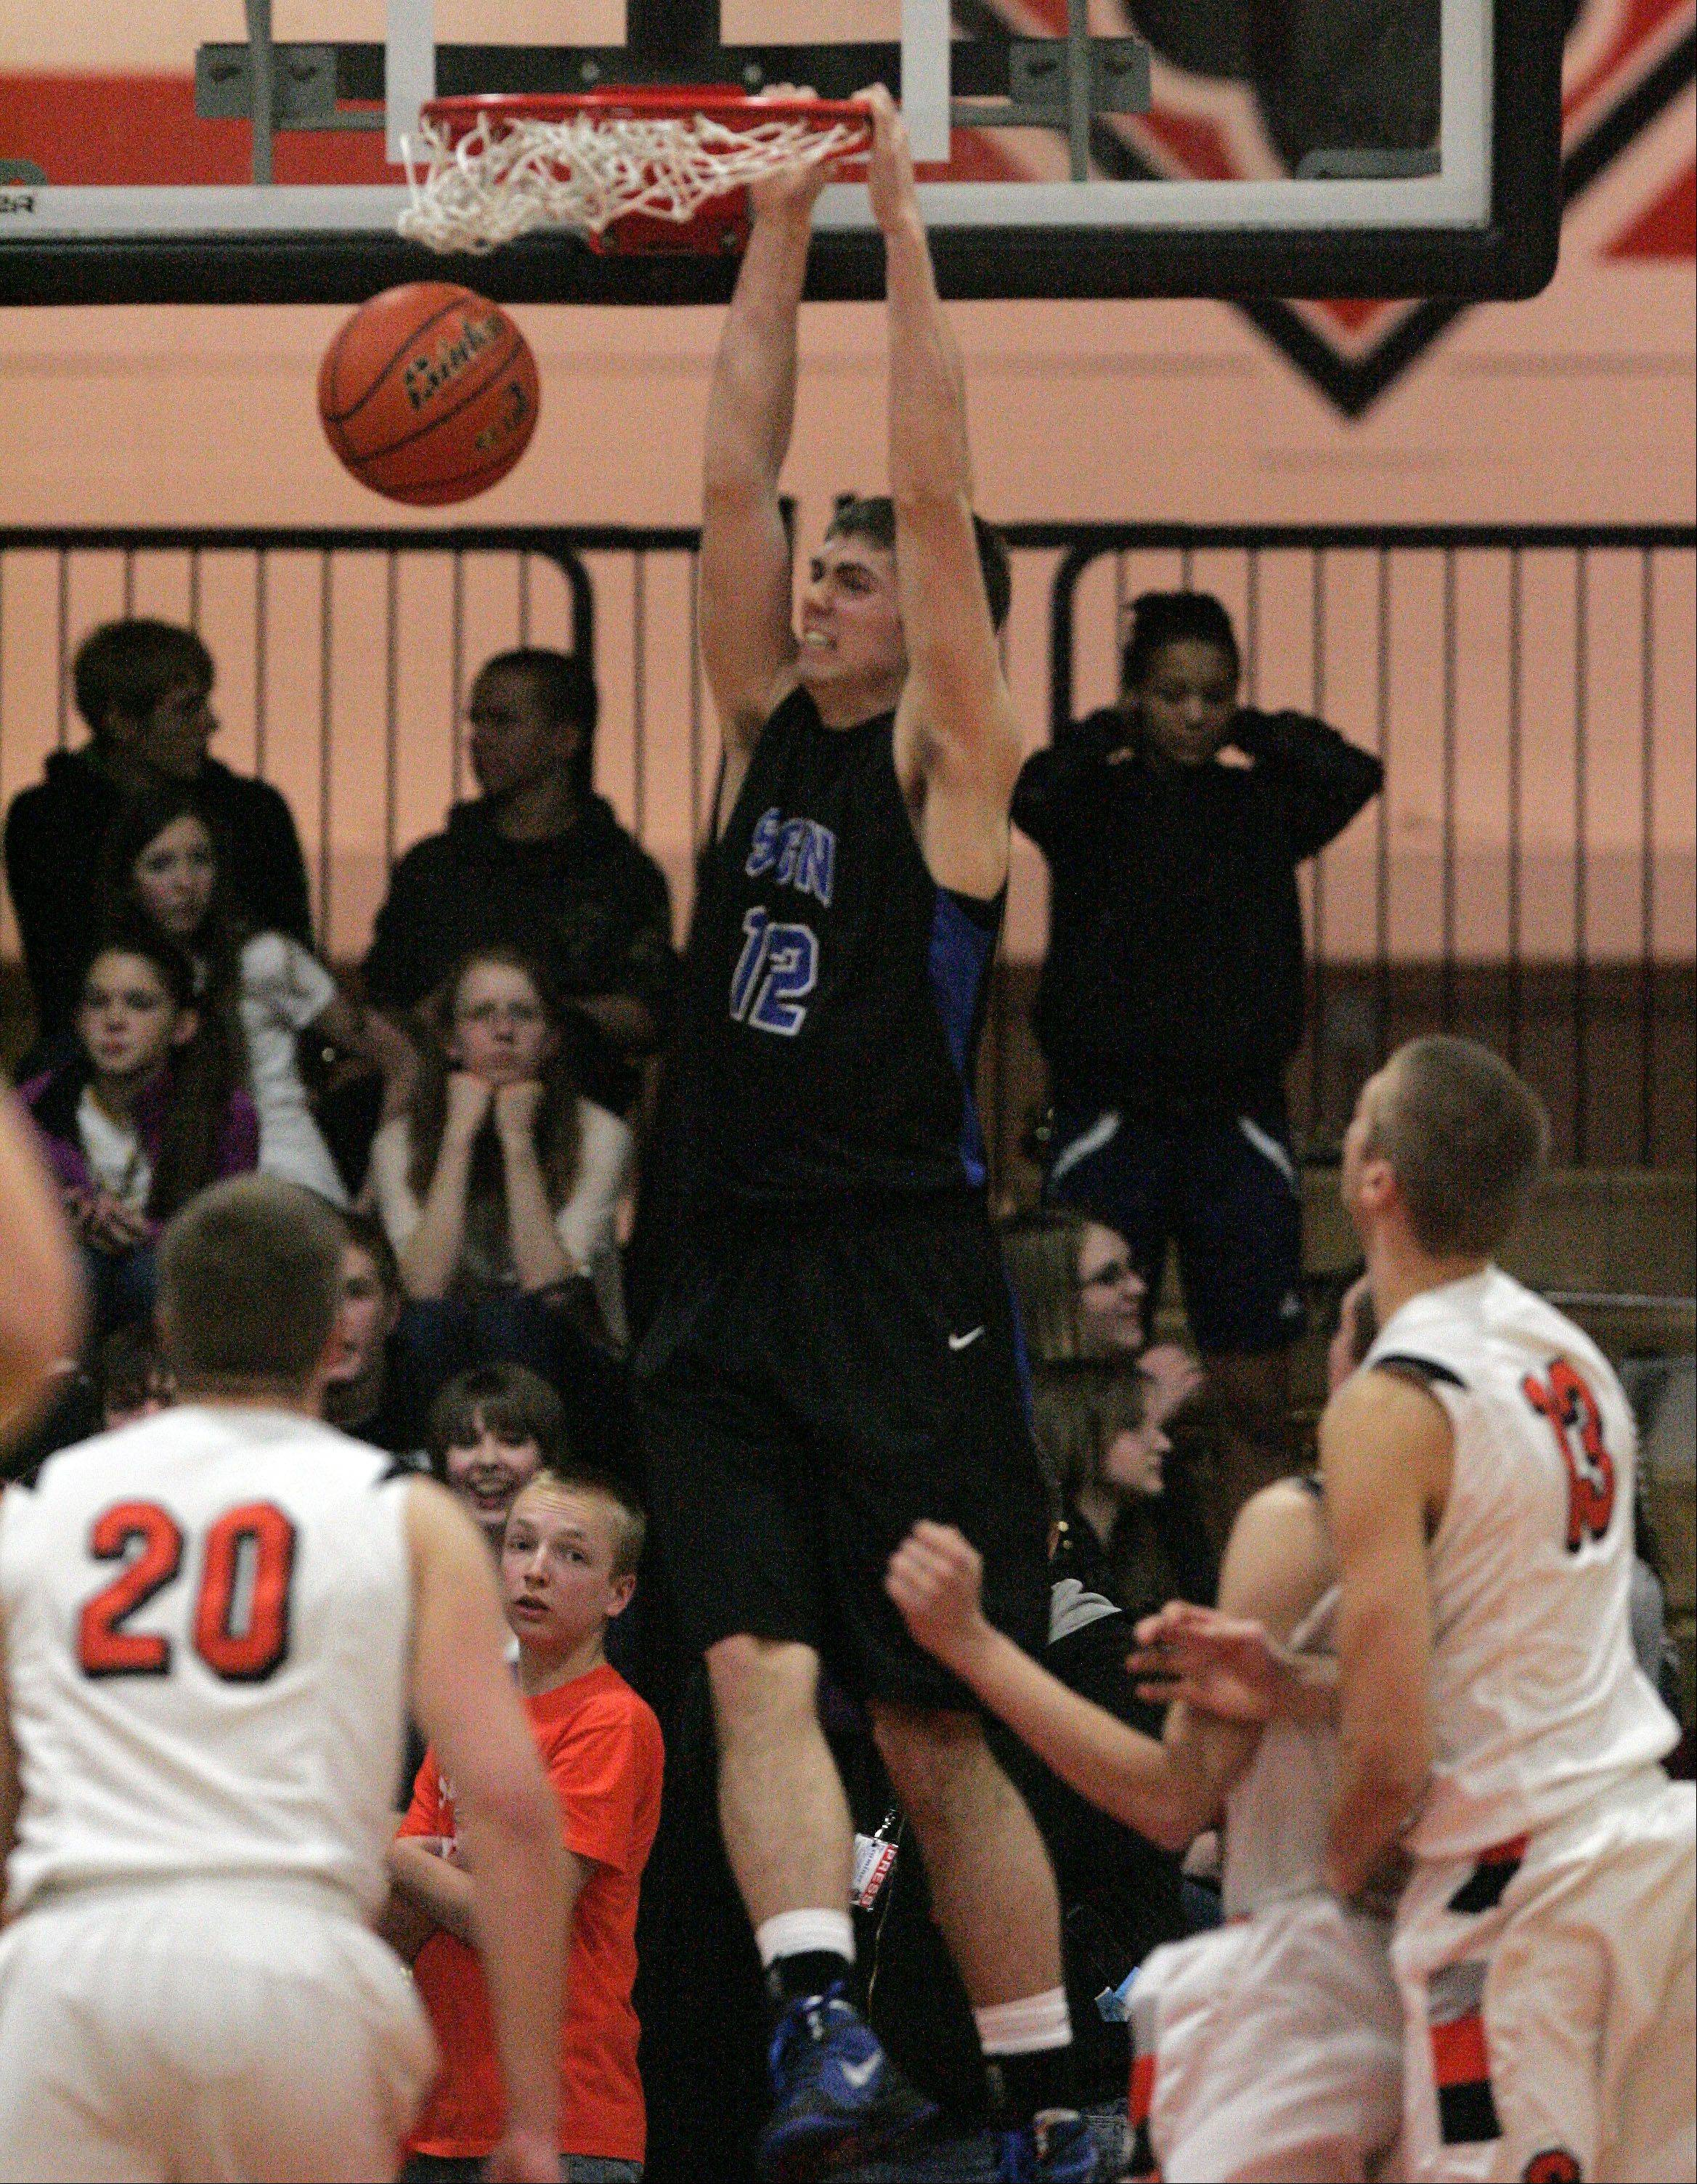 St. Charles North's Quinten Payne, 12, throws home a dunke at St. Charles East during boys basketball Friday January 18, 2013.